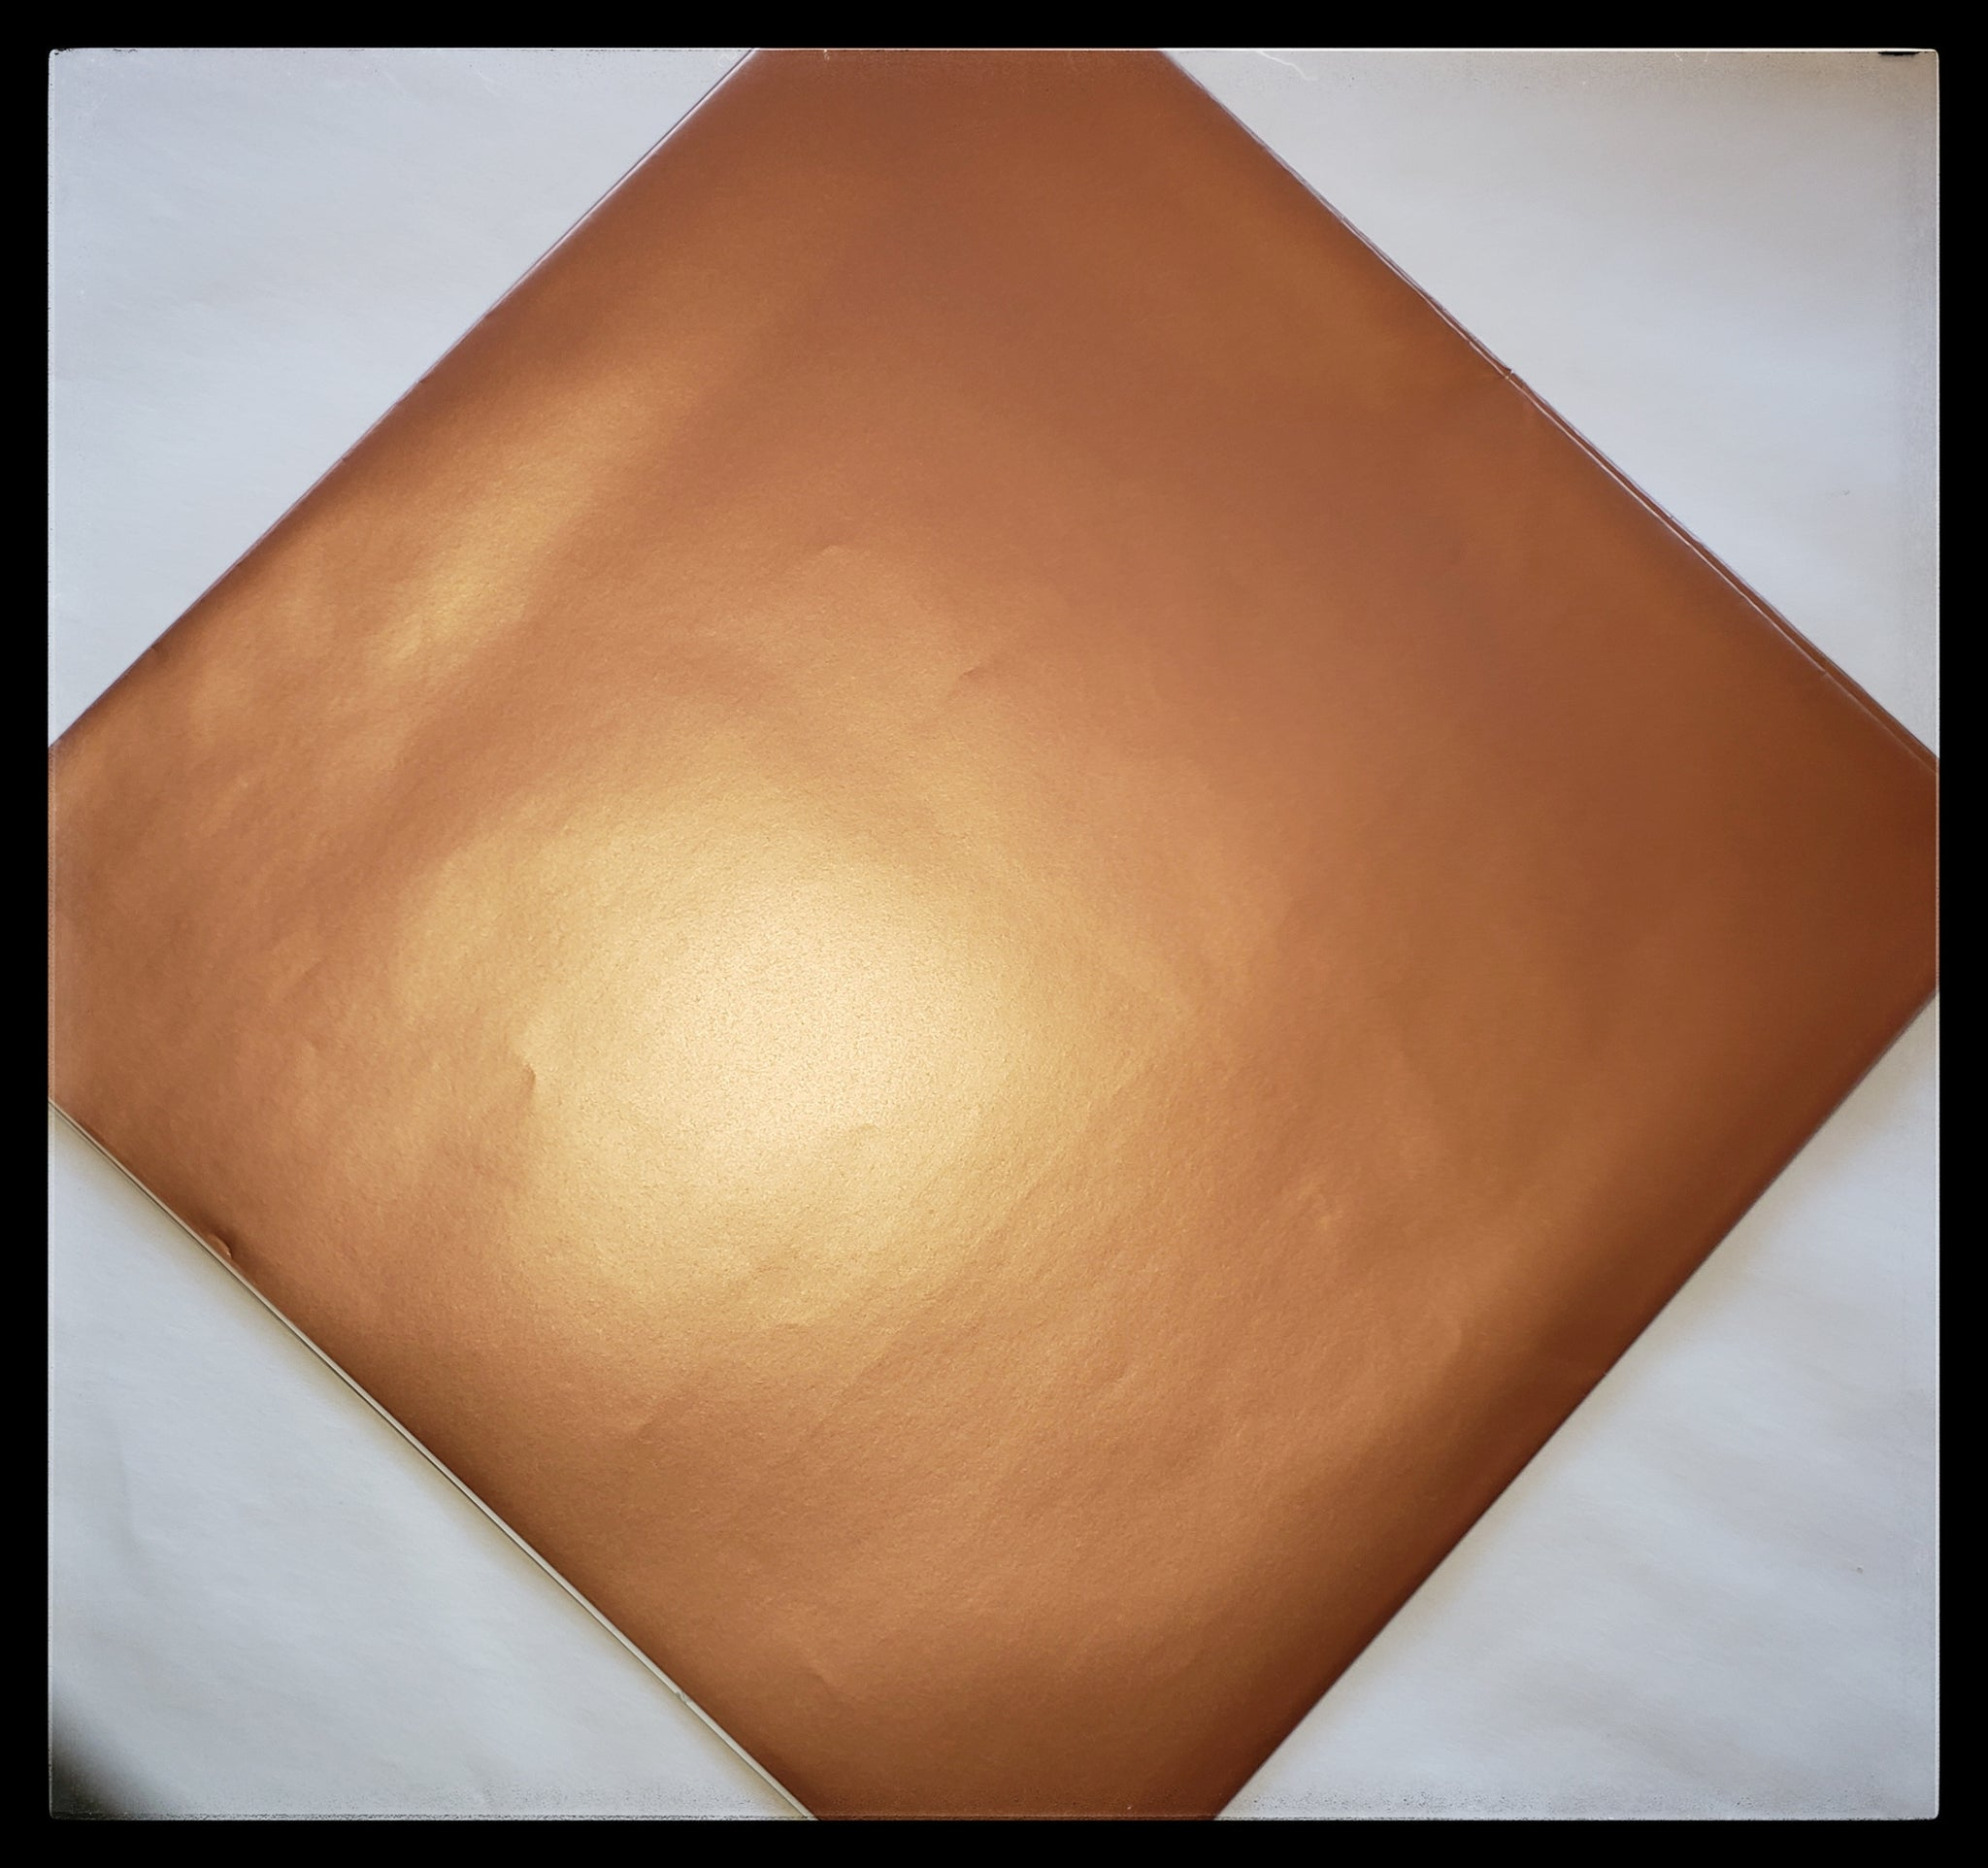 "Metallic bronze   2 Sheets in a pack   20"" x 30"" (51cm x 76cm)    Arrives folded in package 10"" x 10""   Gift wrap contains 100% recycled fiber ADA The Gilded Page Santa Fe New Mexico"